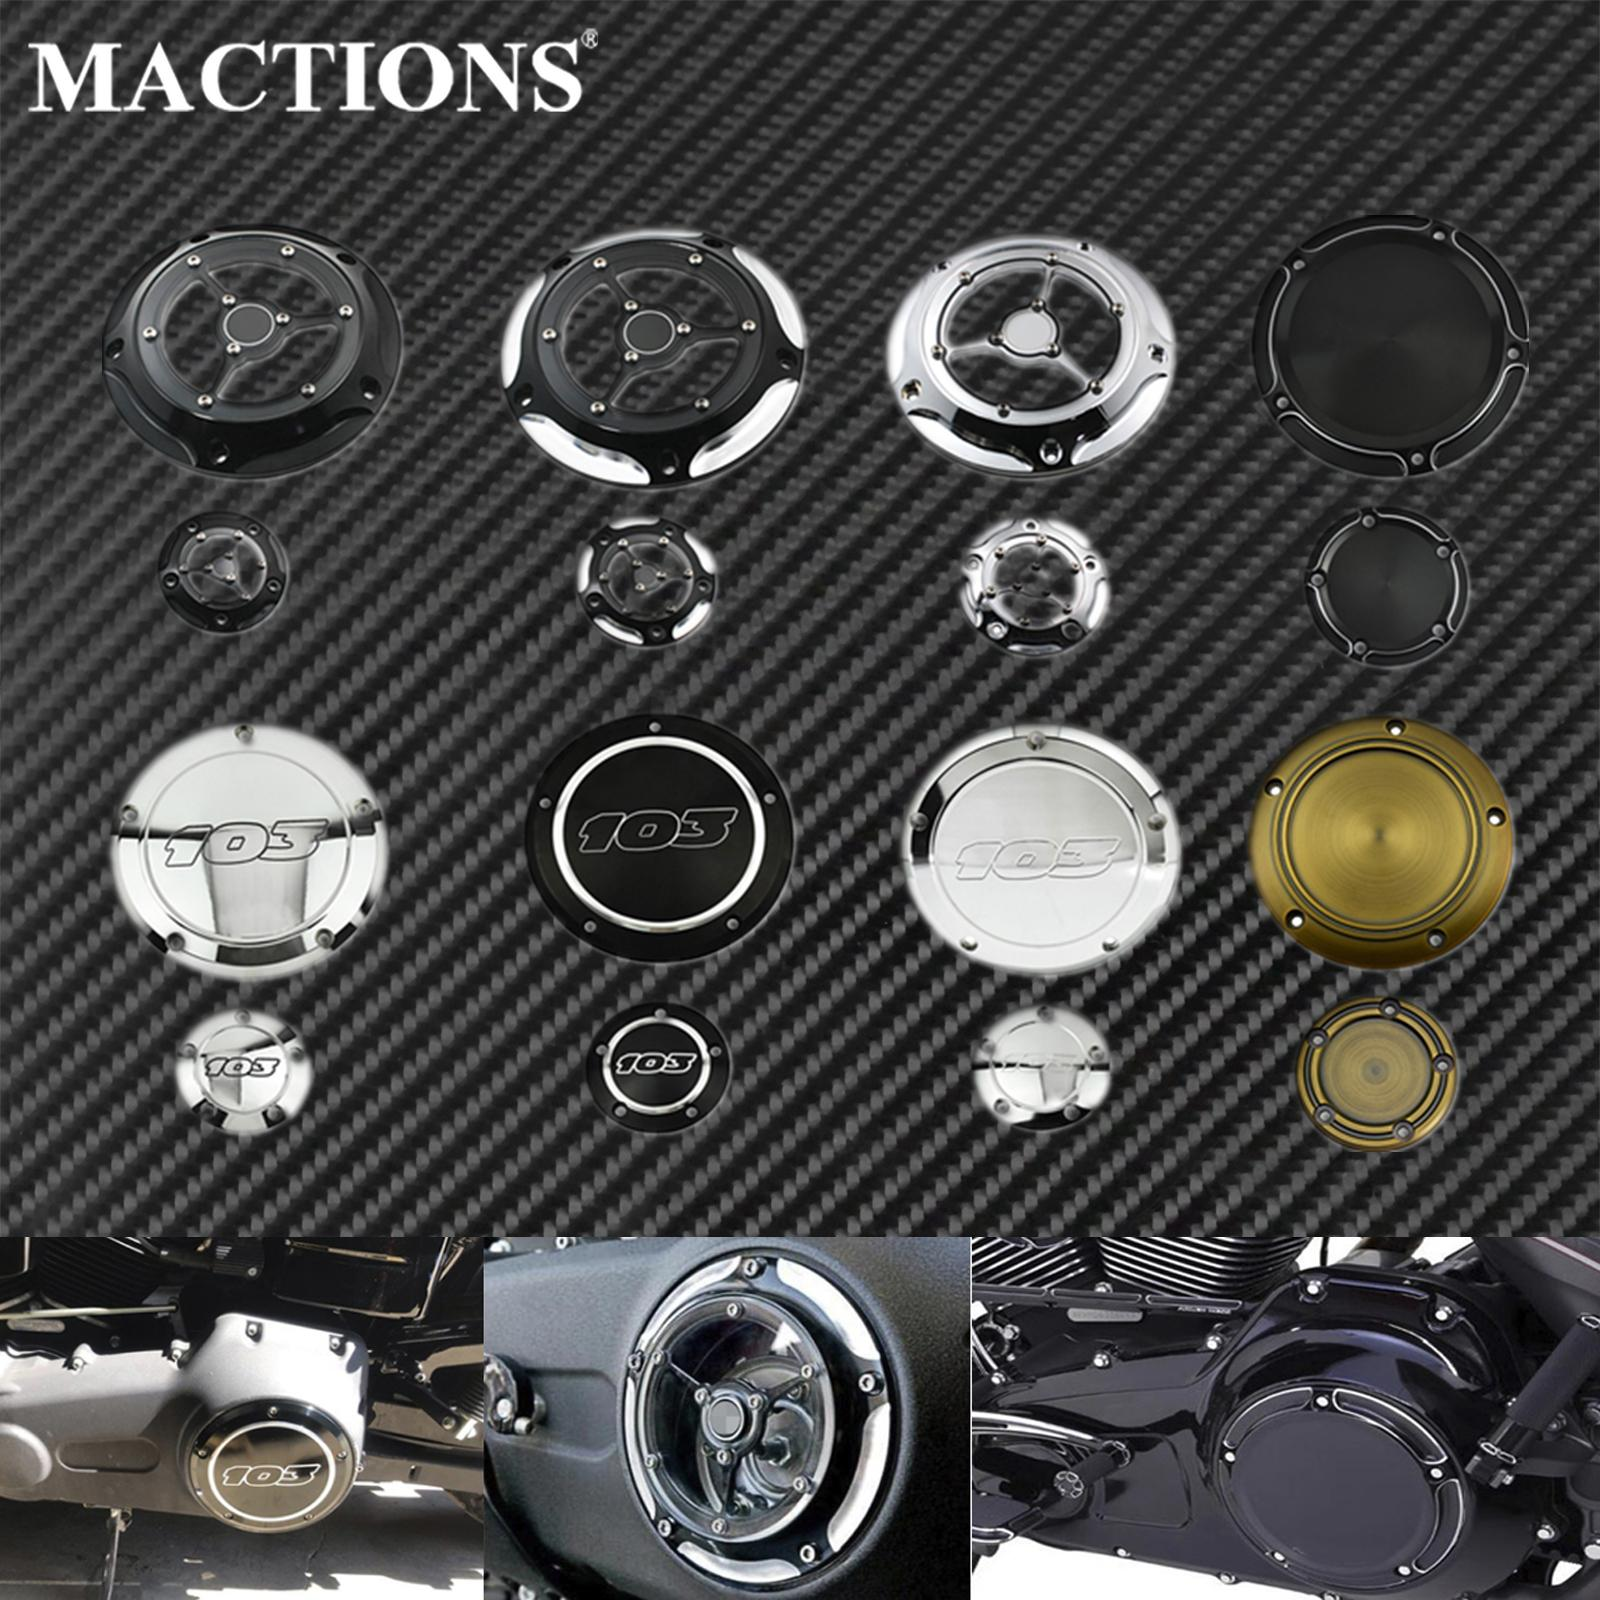 Motorcycle Derby Cover Clutch Timing Timer Cover Black Chrome For Harley Touring Road King Dyna FLD Softail Deluxe FLSFB 1999-17